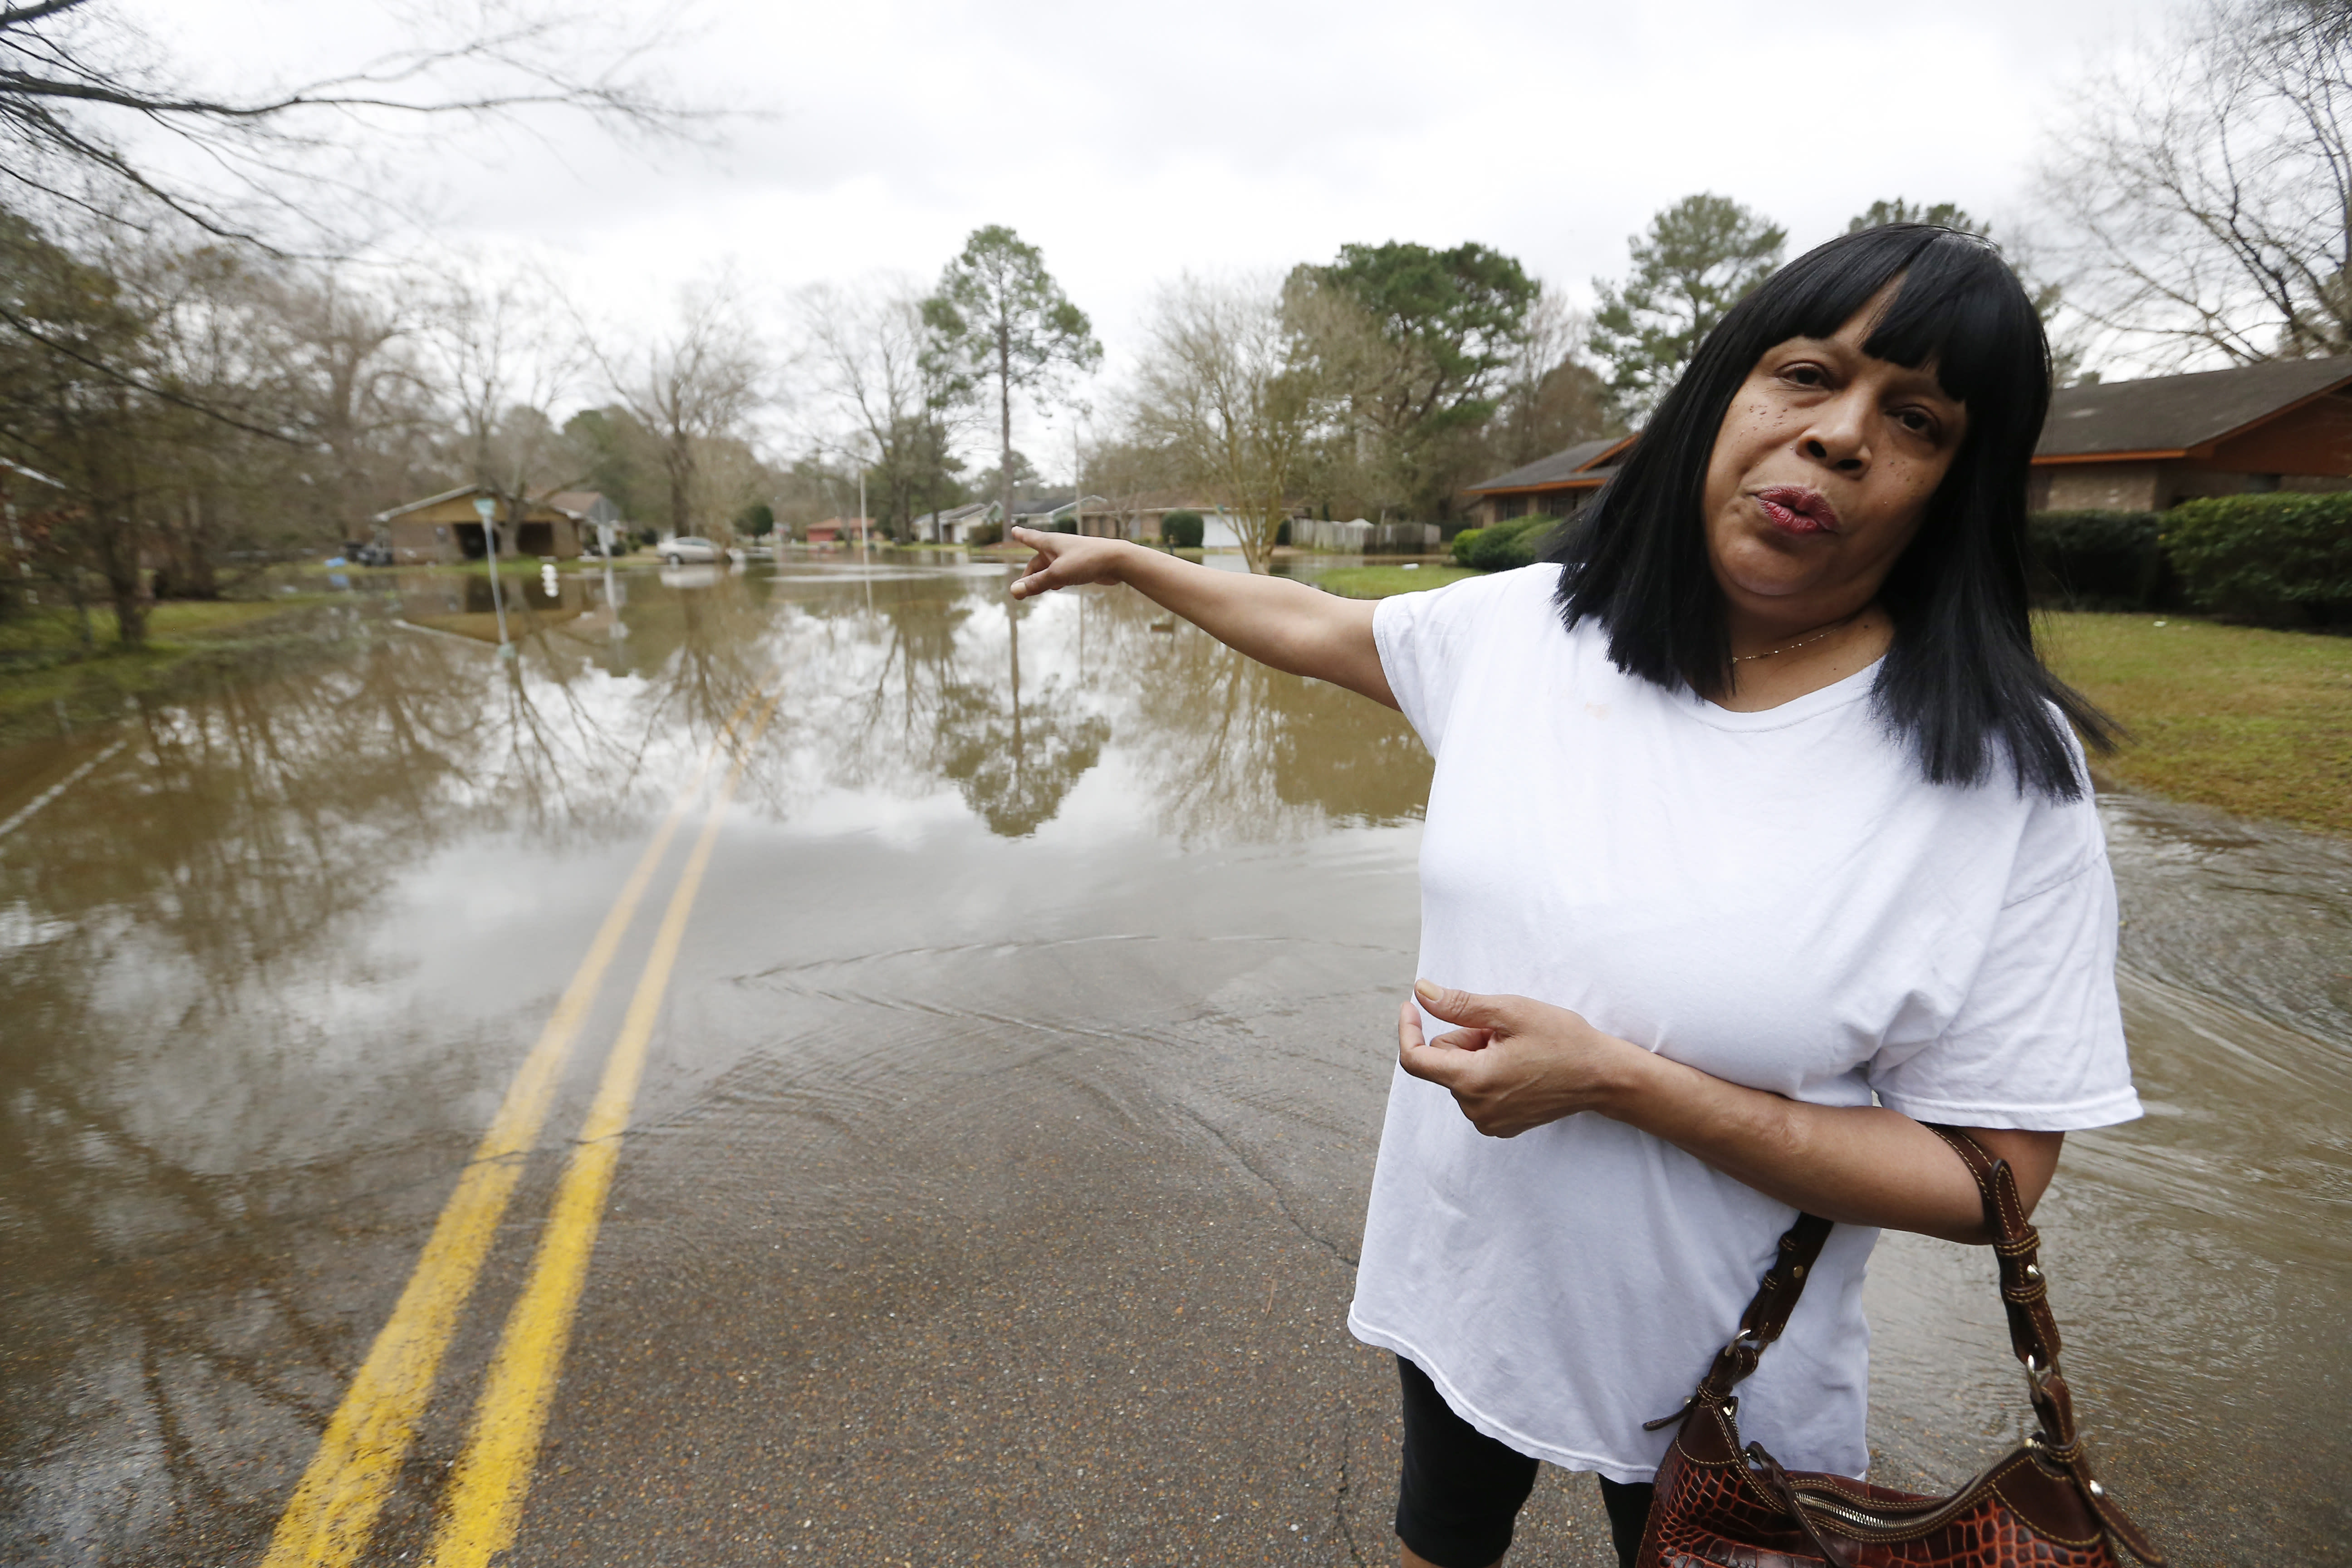 Trina Blackmon, a 28-year resident of northeast Jackson, Miss., wants answers as to why the flooding issues in her neighborhood had not been dealt with, and why she cannot get the city to provide a high water vehicle to take her and others to their homes to so they can inspect the water damage, Tuesday, Feb. 18, 2020. Officials have limited entry to the flooded neighborhoods, warning residents about the current flow and the contamination of the receding waters. (AP Photo/Rogelio V. Solis)